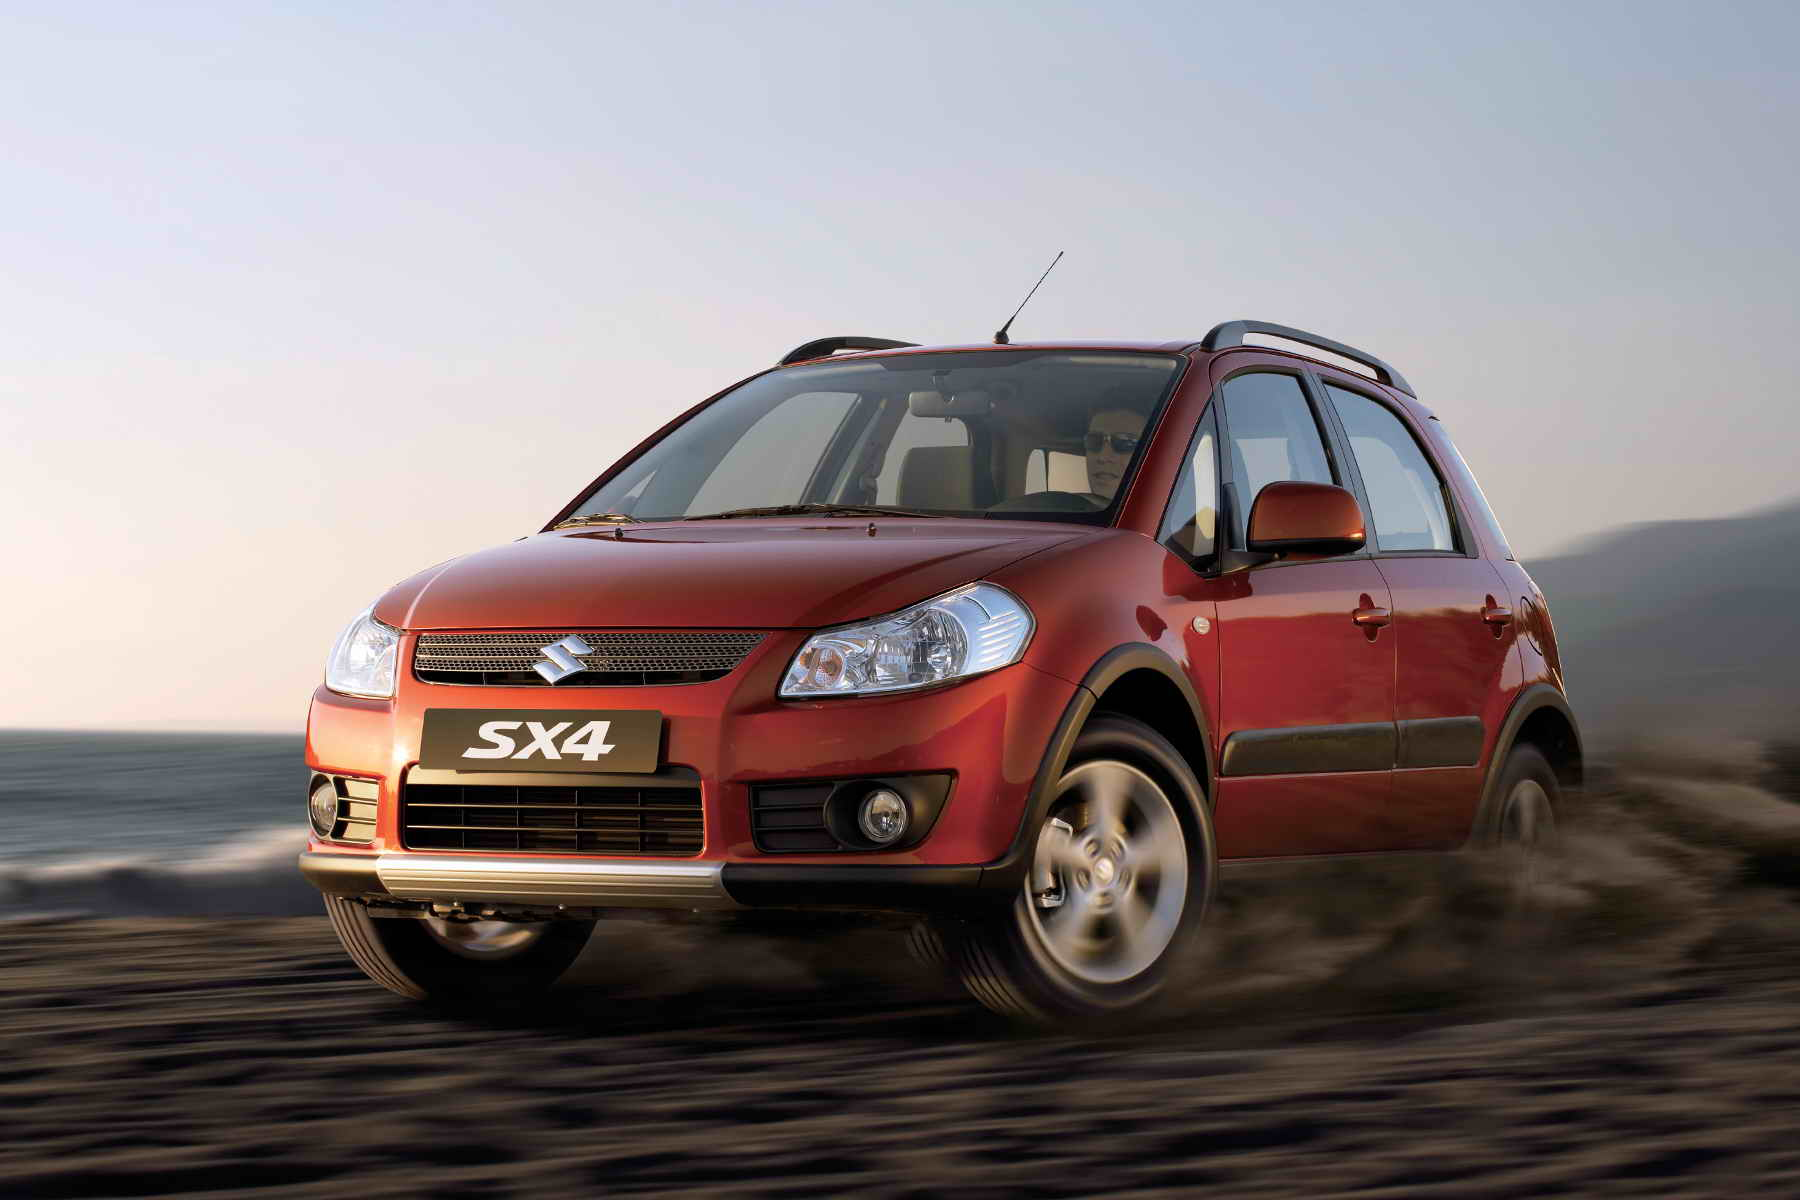 2007 Suzuki SX4 | Top Speed. »